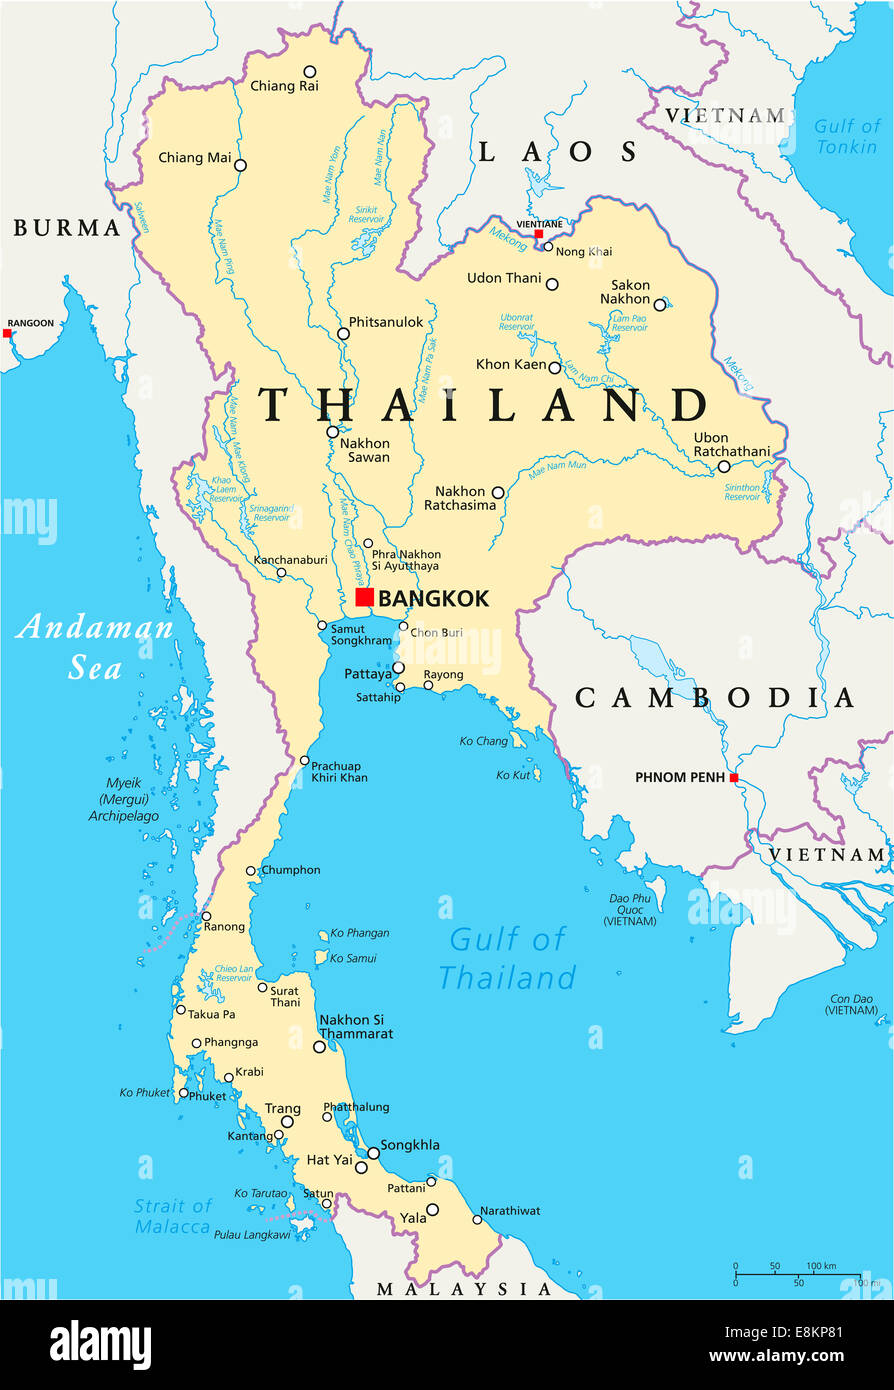 Thailand Political Map With Capital Bangkok National Borders - Map of thailand cities